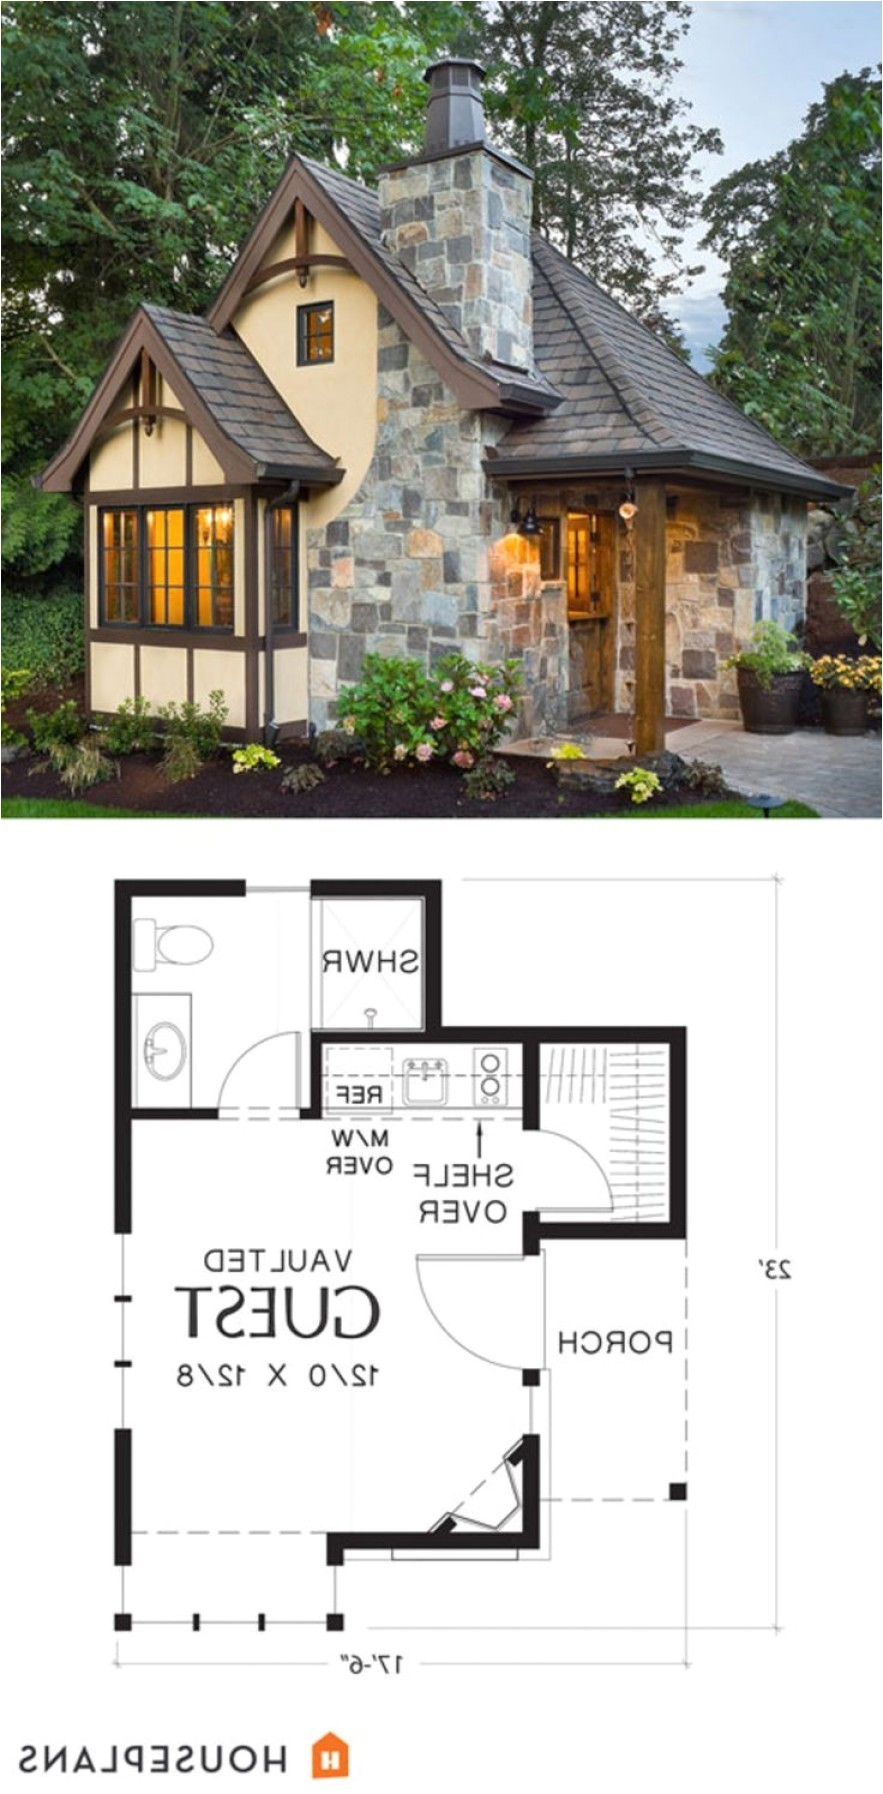 cool smaller smarter home plans 23 white country house with interior photos